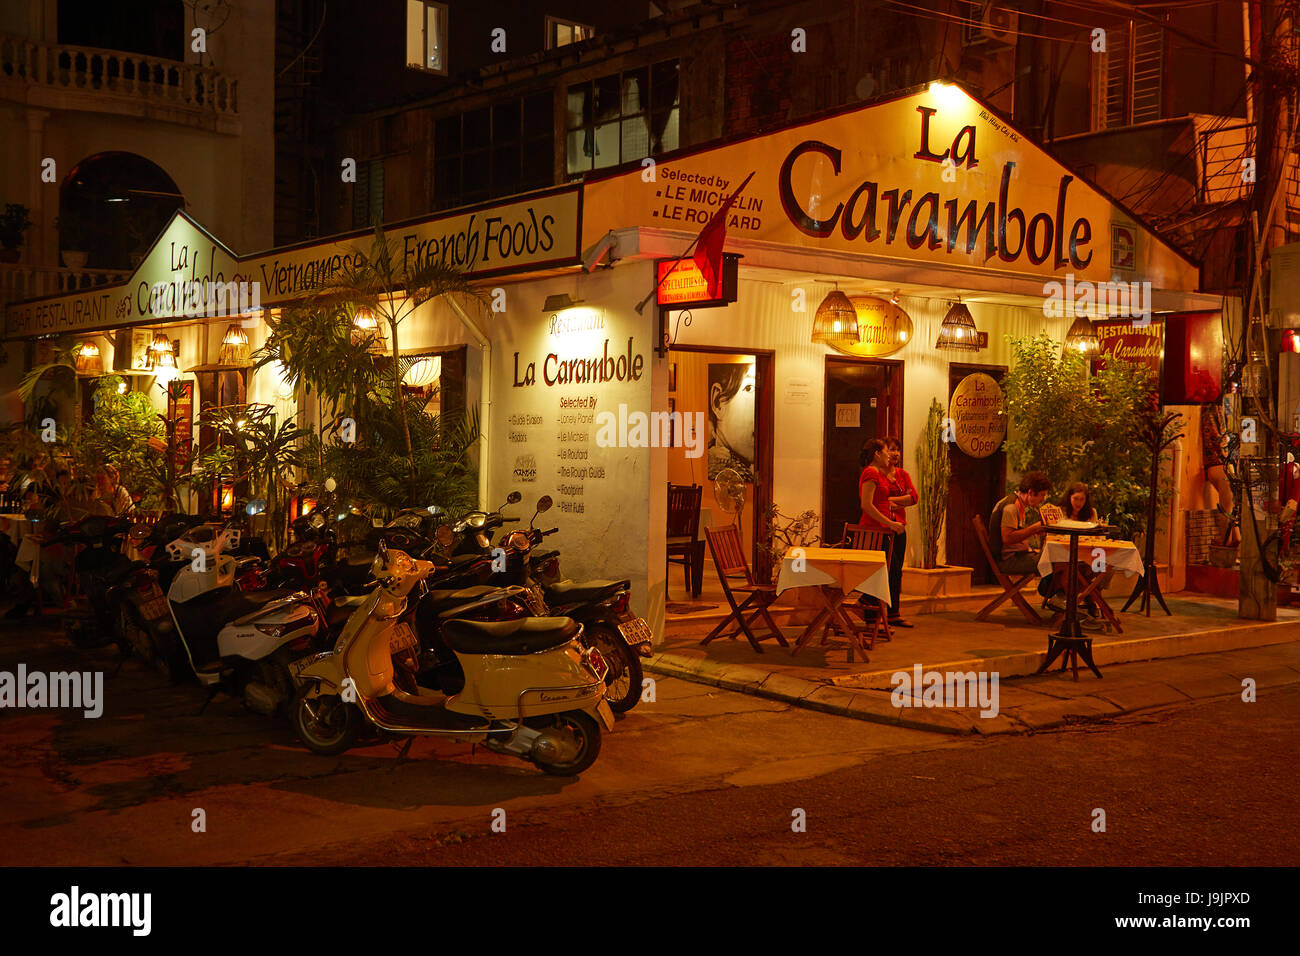 La Carambole Restaurant, Hue, North Central Coast, Vietnam - Stock Image